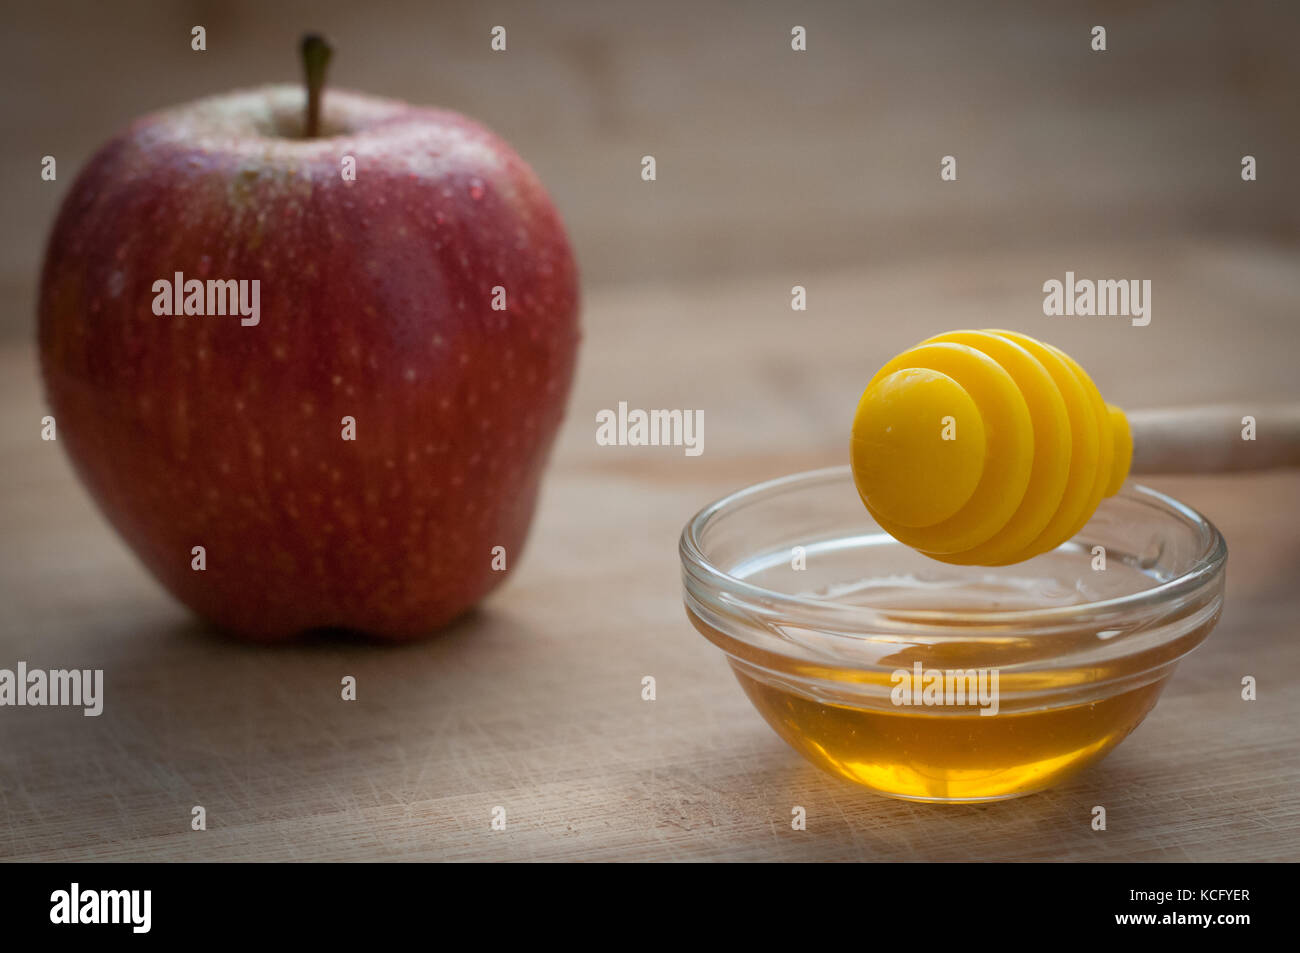 Apple Like Stock Photos & Apple Like Stock Images - Alamy